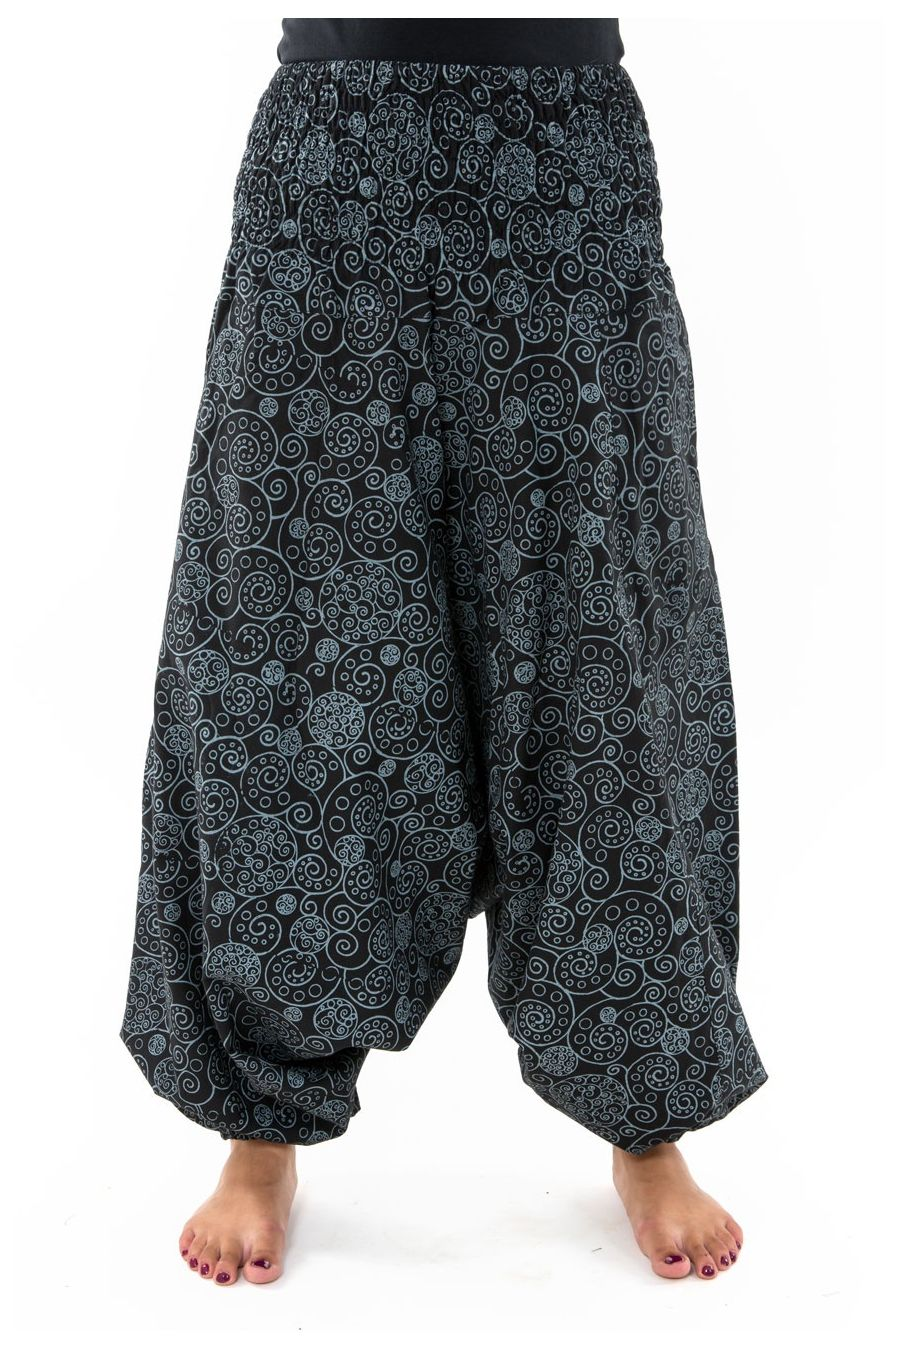 Perfect Stylish Harem Pants For Women With Hippie Fisher Design  Designers